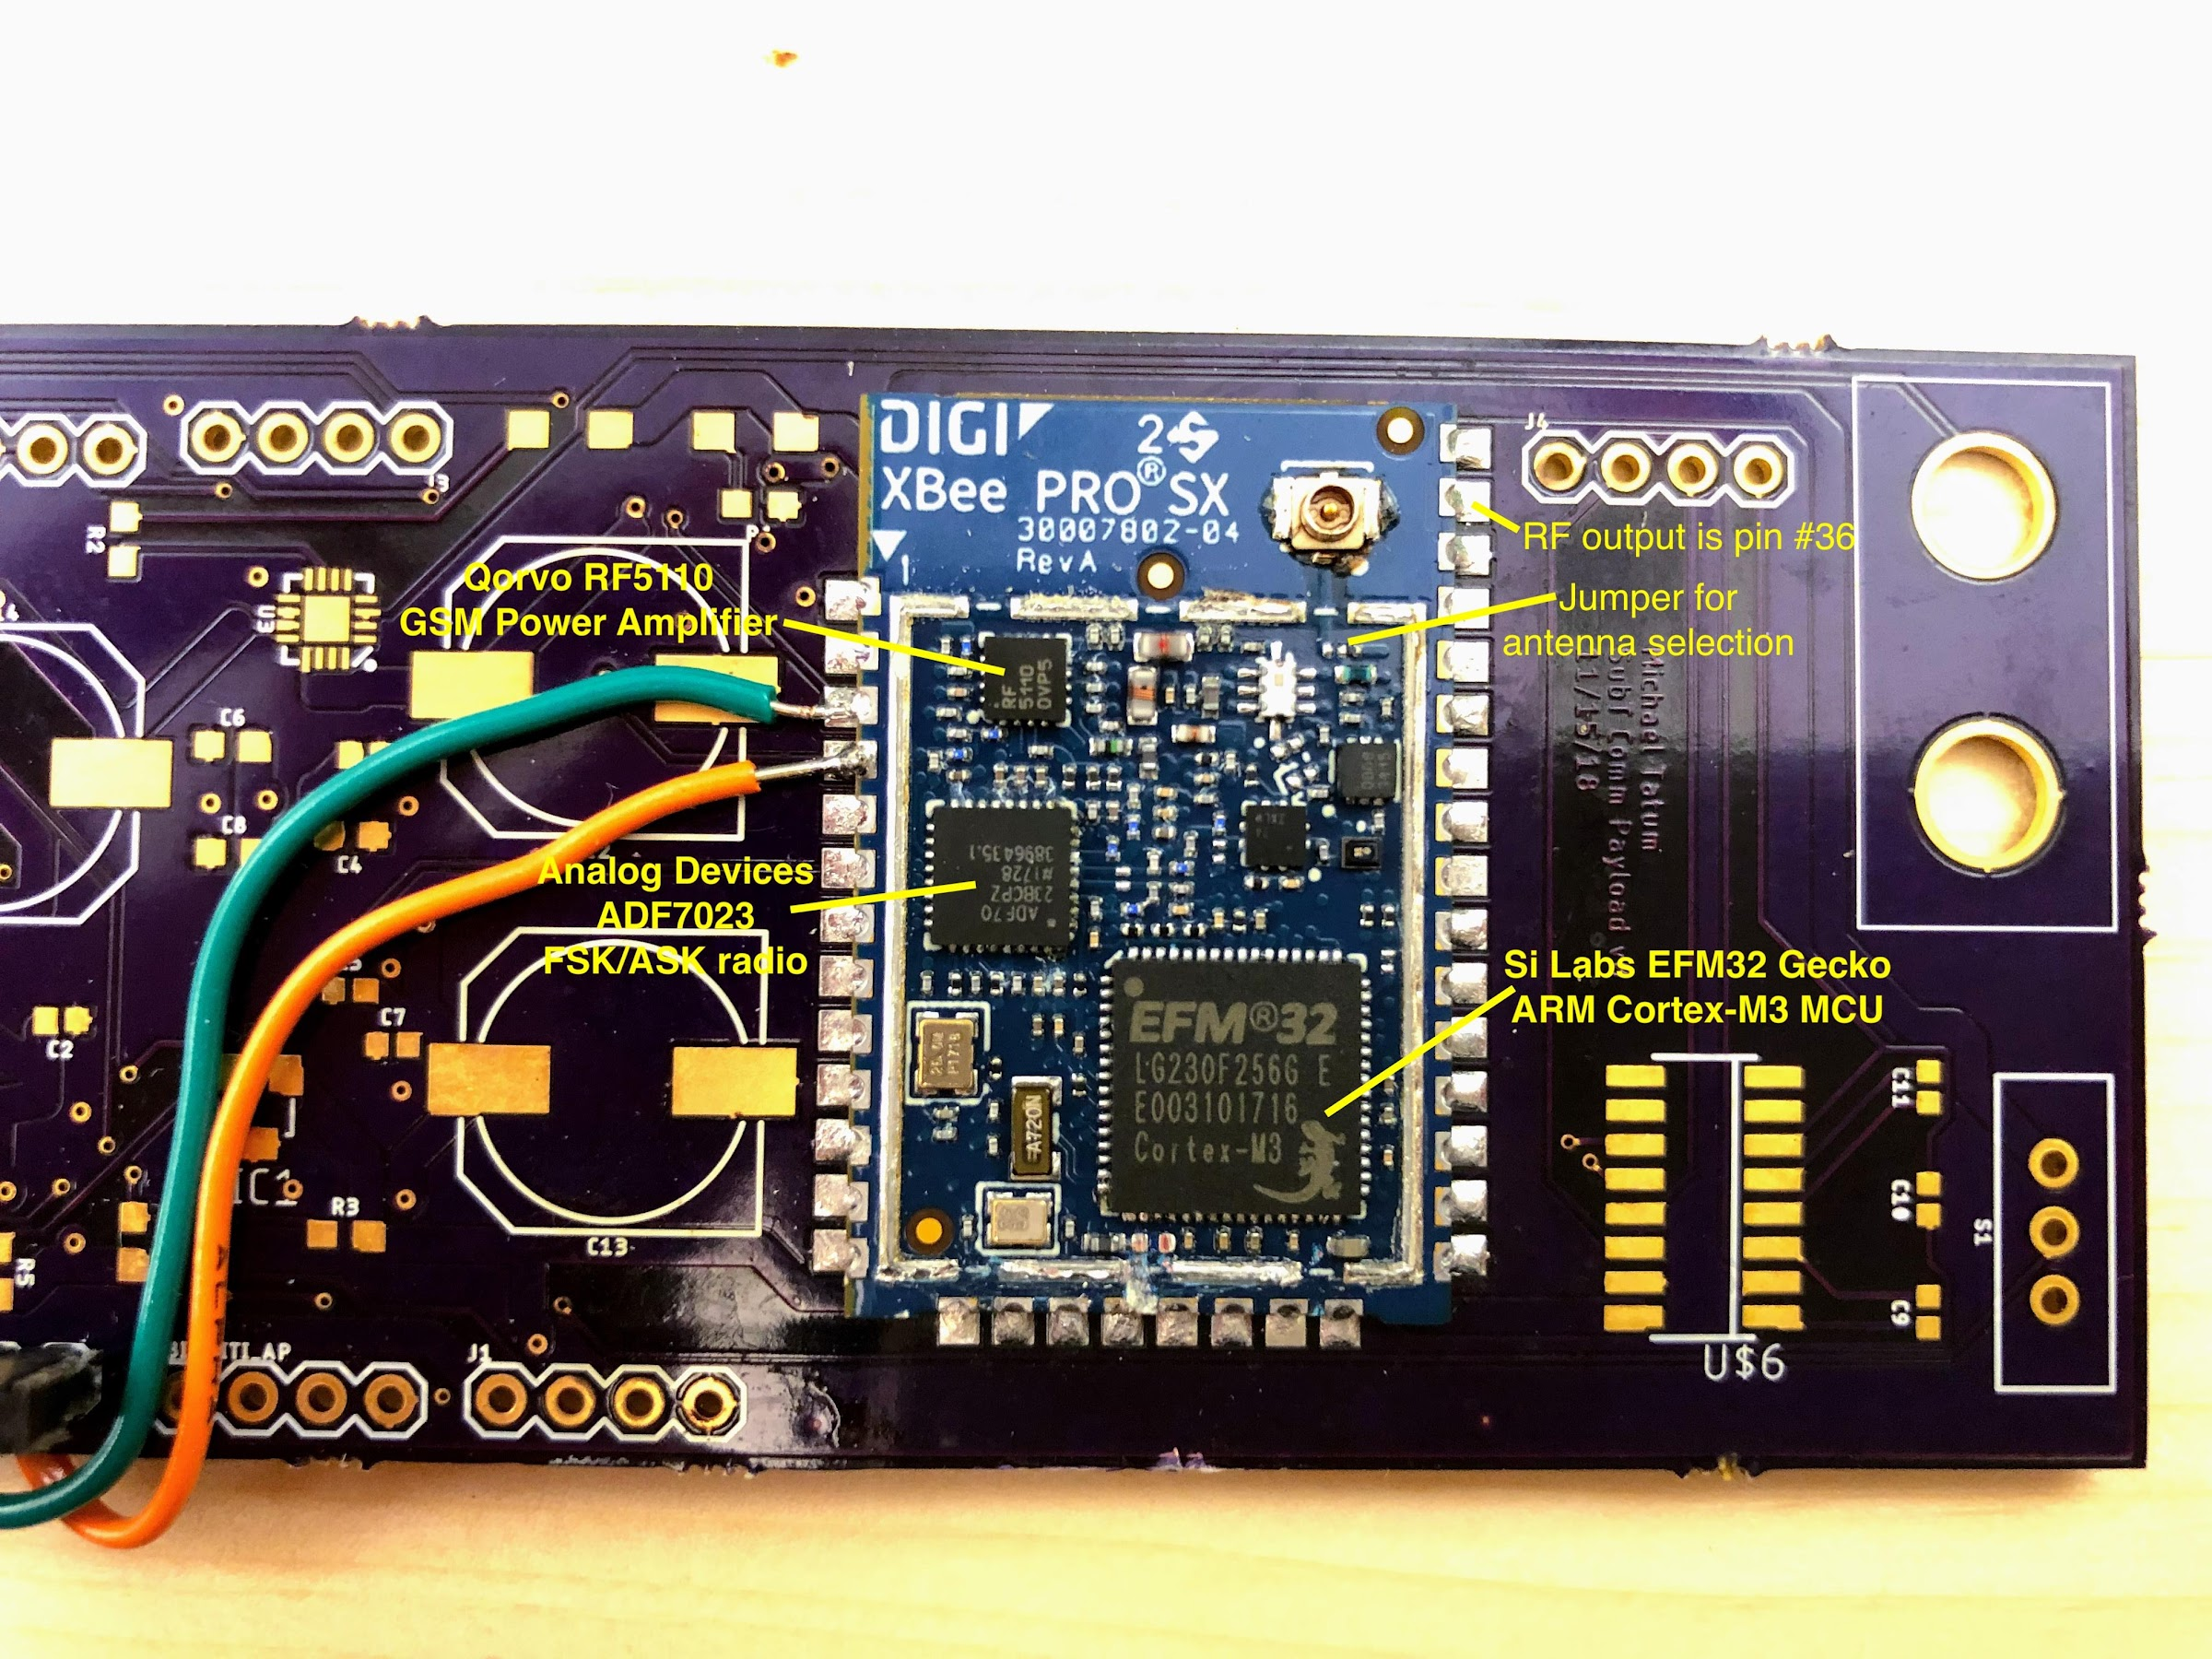 Digi XBee Pro node without the metal can